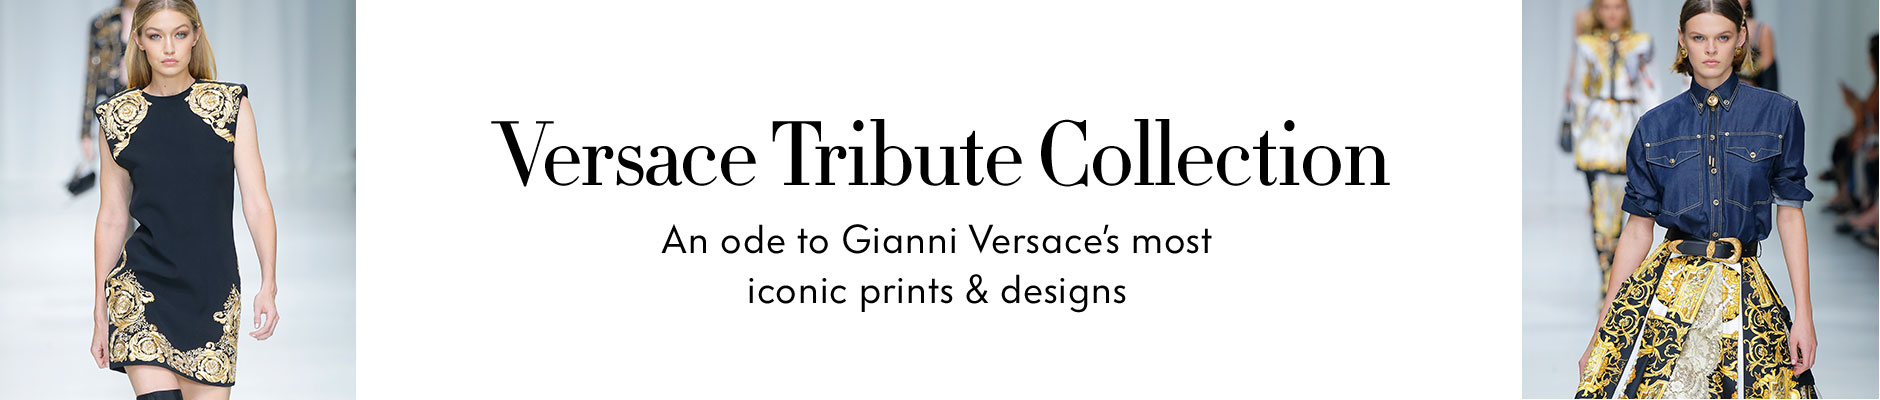 Versace Tribute Collection - An ode to Gianni Versace's most iconic prints & designs